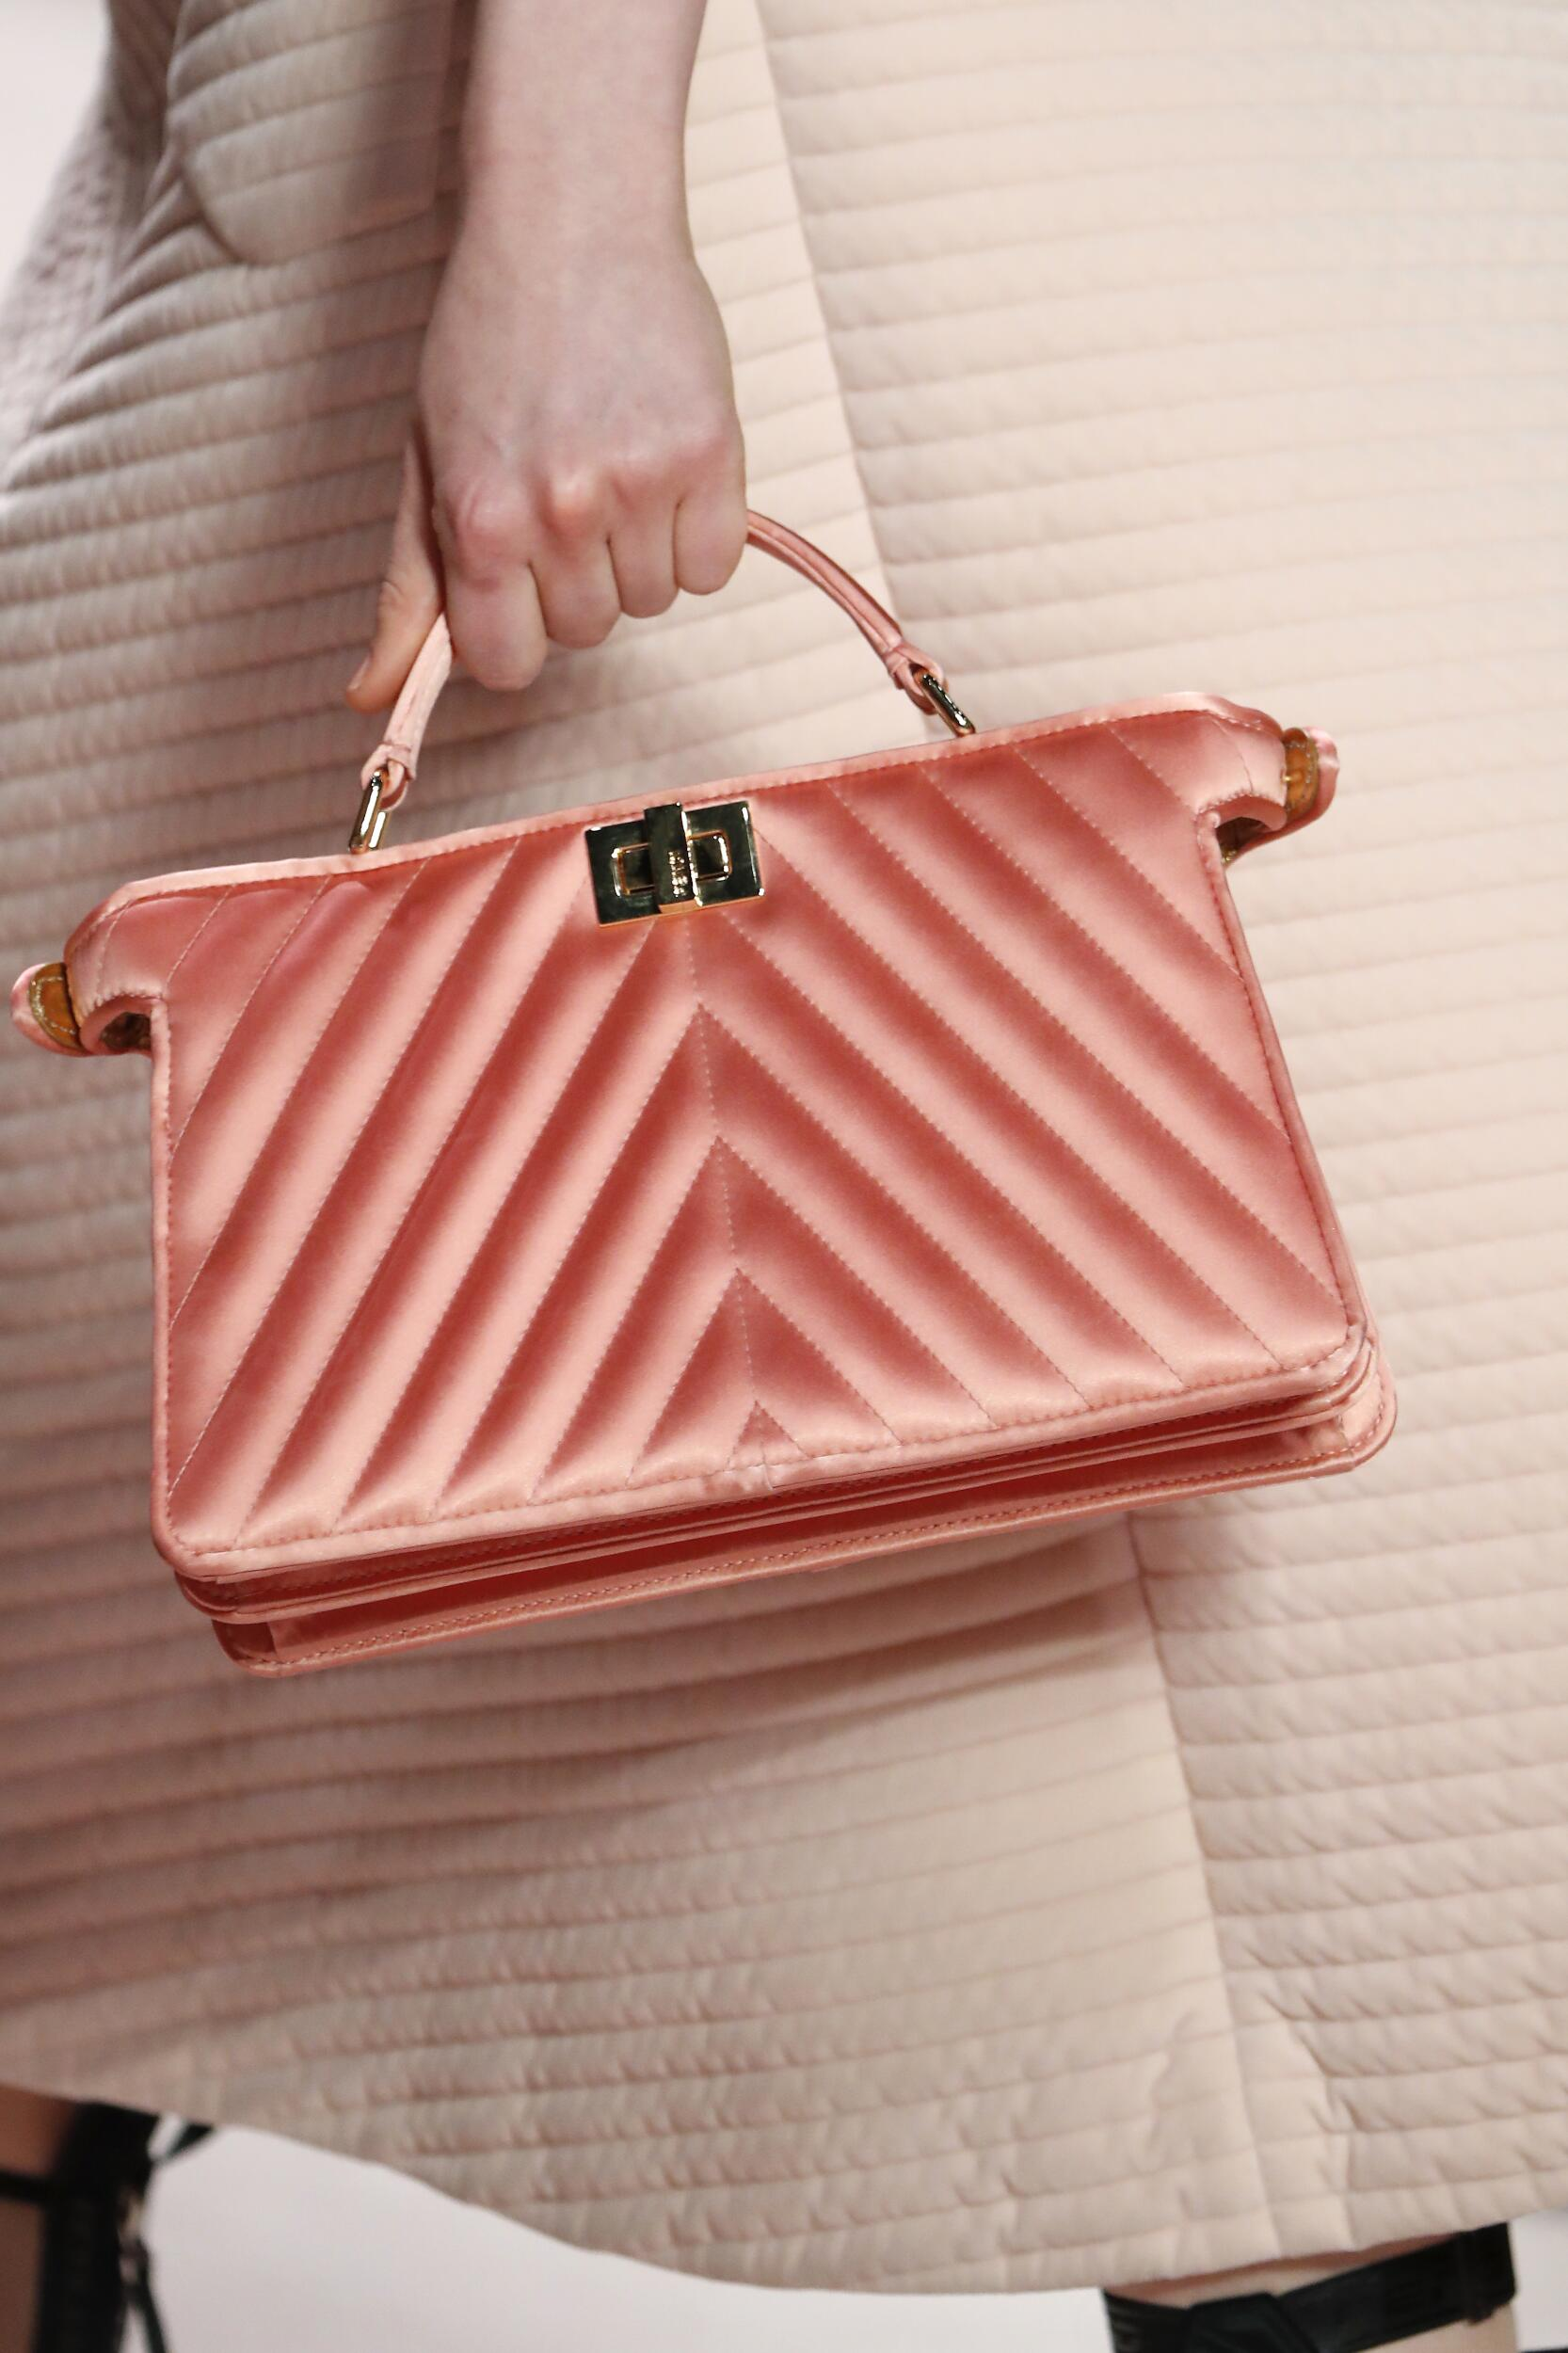 2020 Handbag Detail Fendi